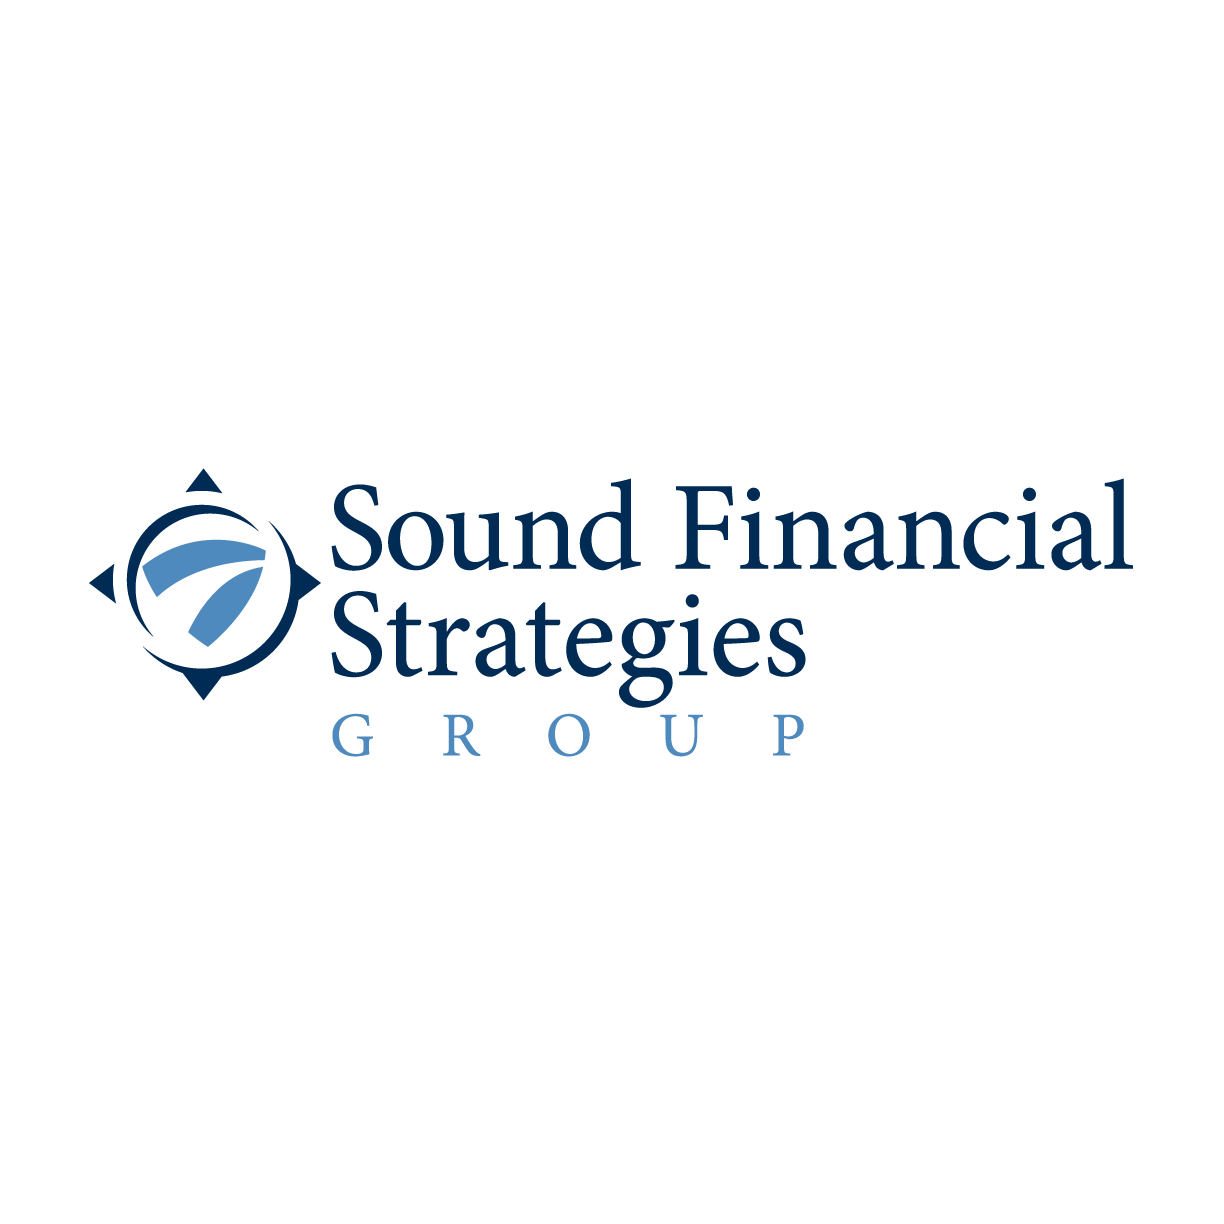 Sound Financial Strategies Group